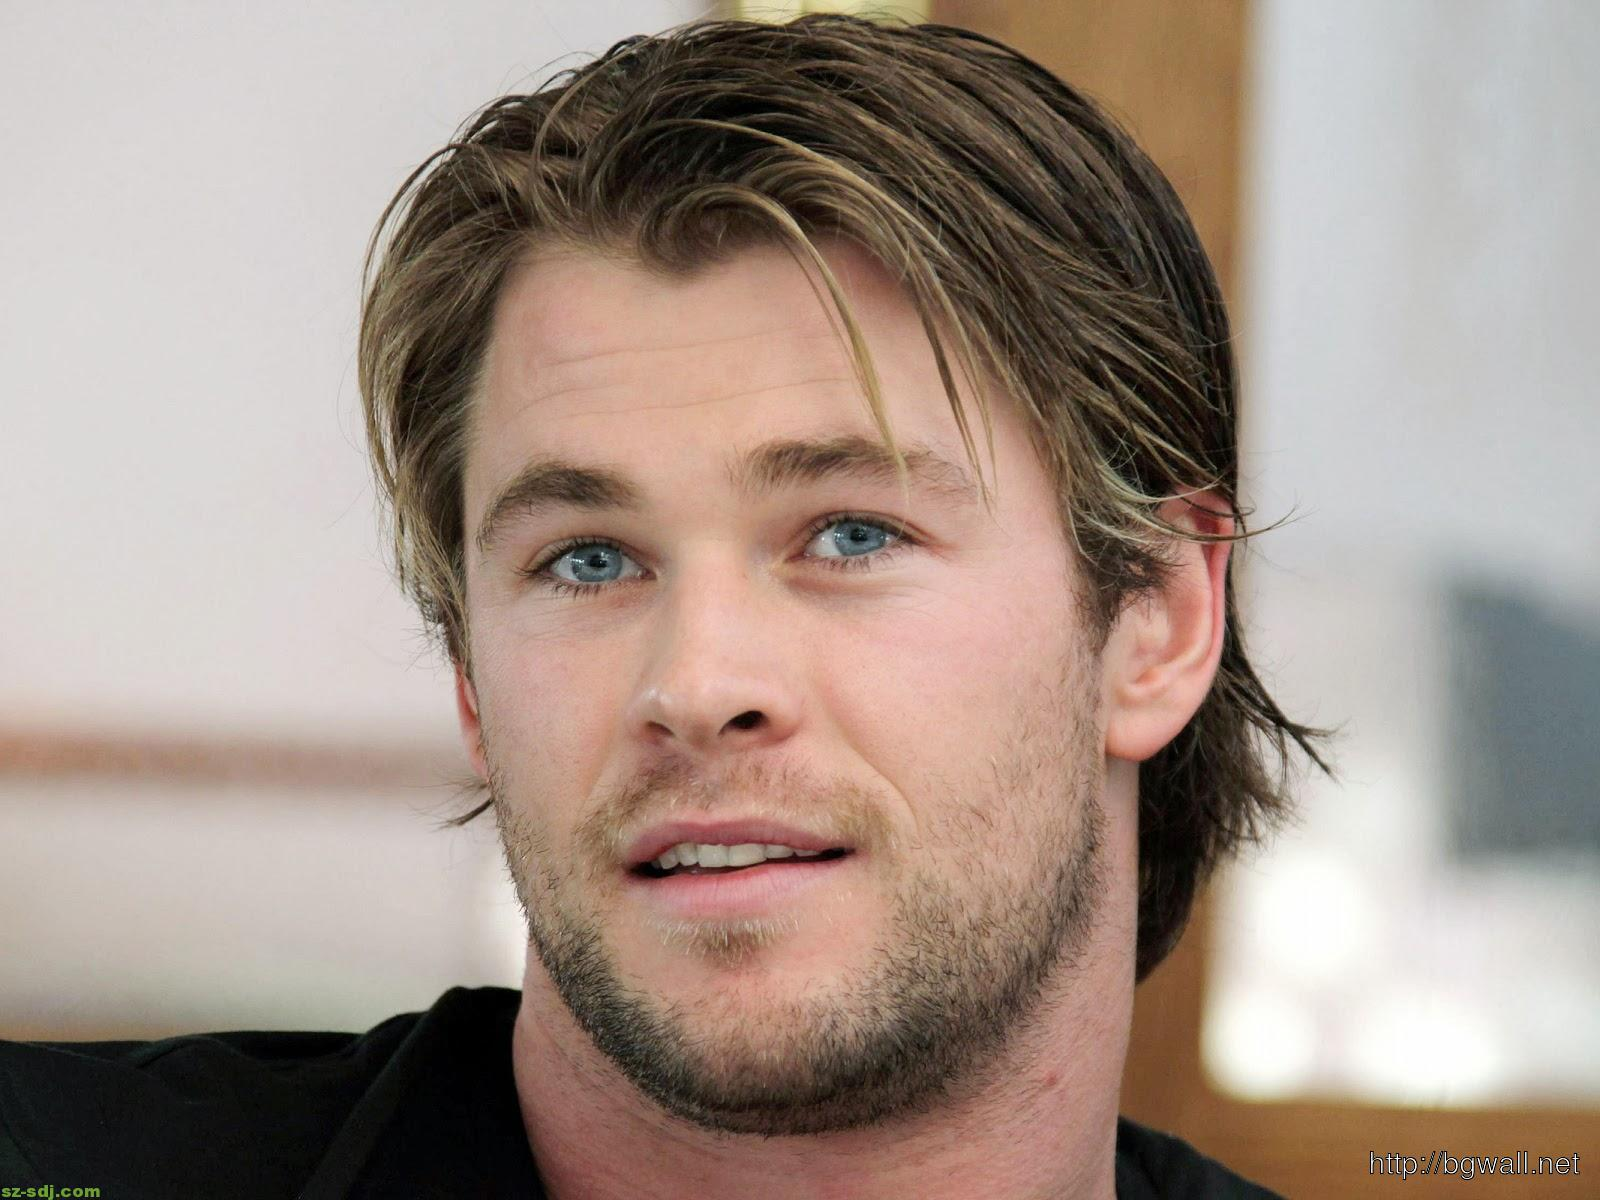 chris-hemsworth-with-his-blue-eye-wallpaper-photoshot